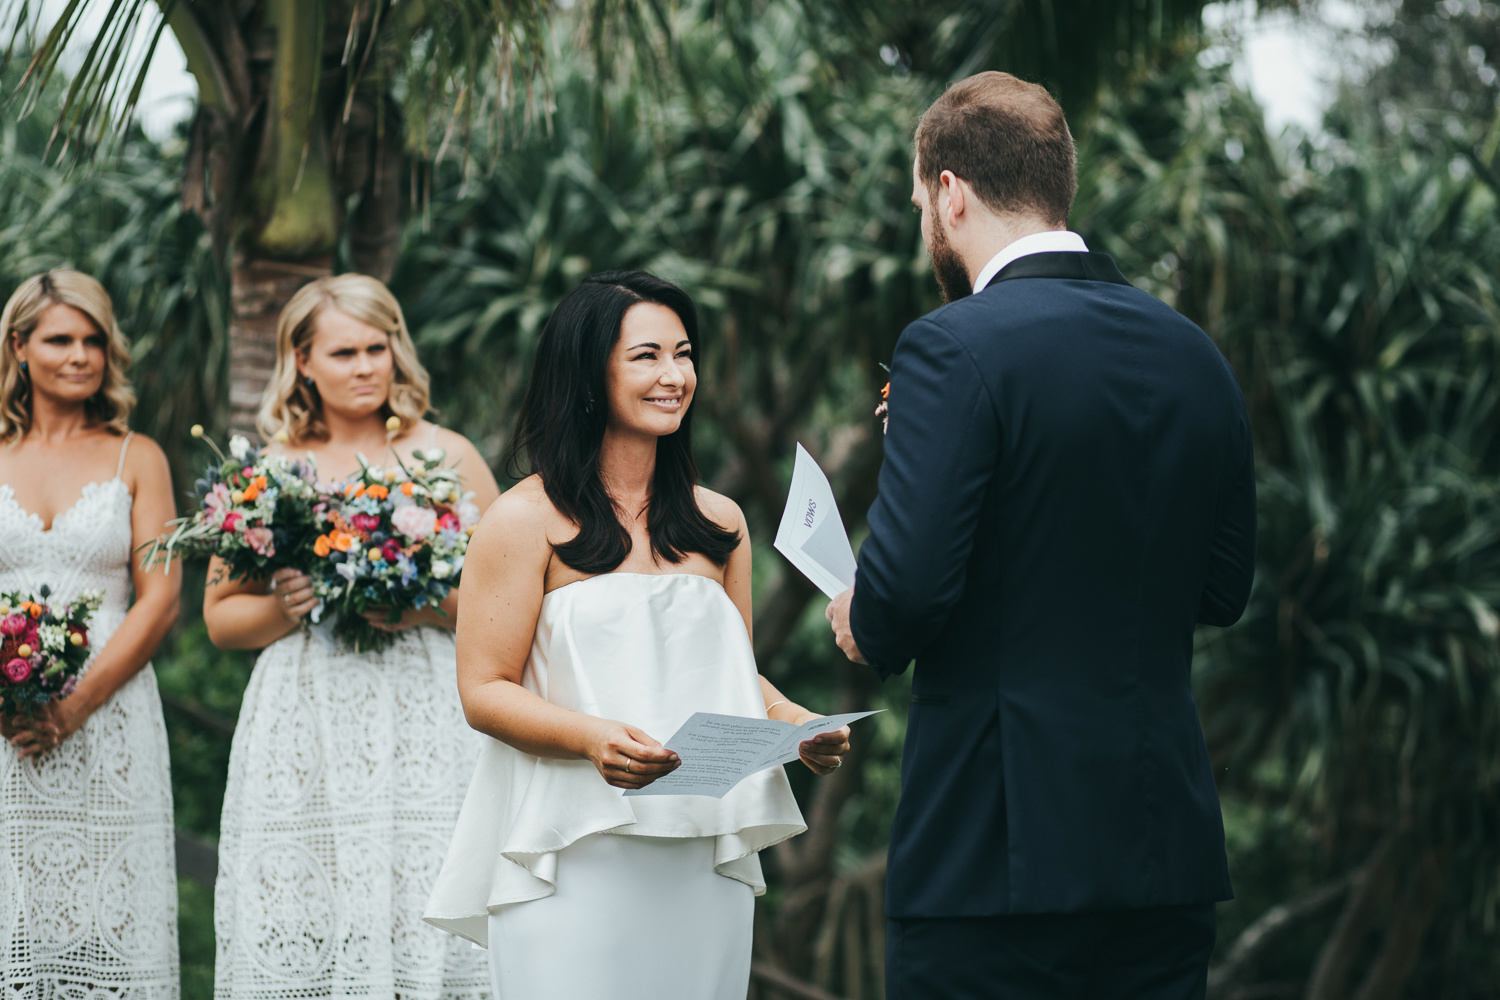 055-halcyon_house_byron_bay_wedding_photographer.jpg